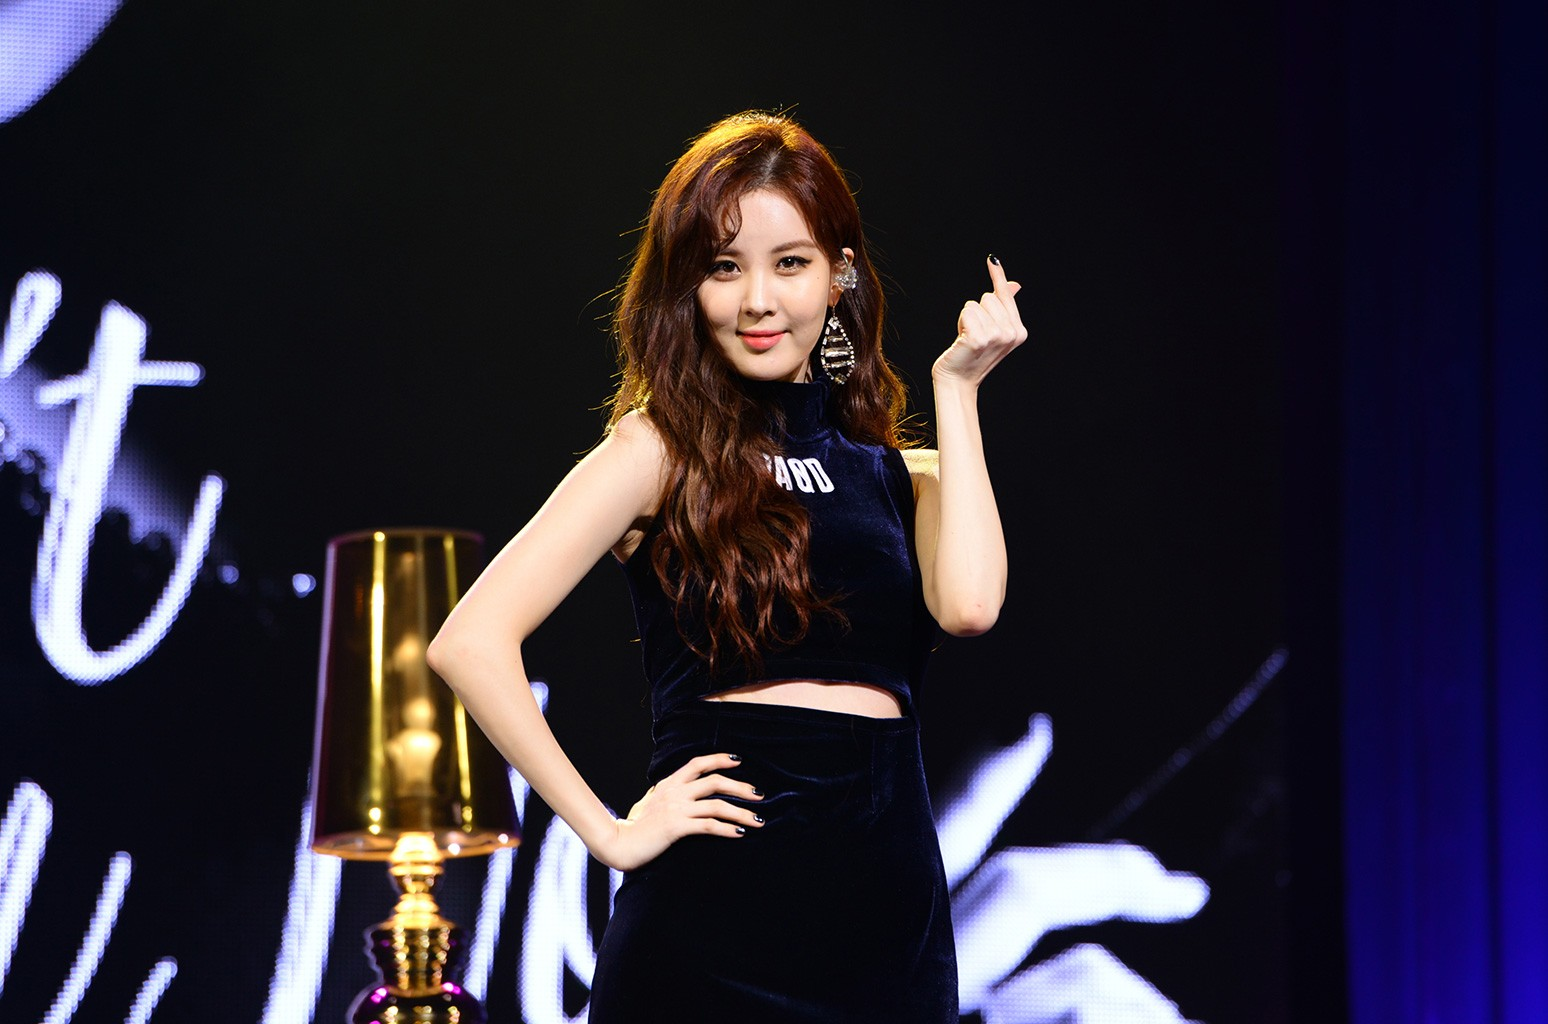 """Seohyun of South Korean girl group Girls' Generation performs during the press conference of her first solo album """"Don't Say No"""" on Jan. 16, 2017 in Seoul, South Korea."""